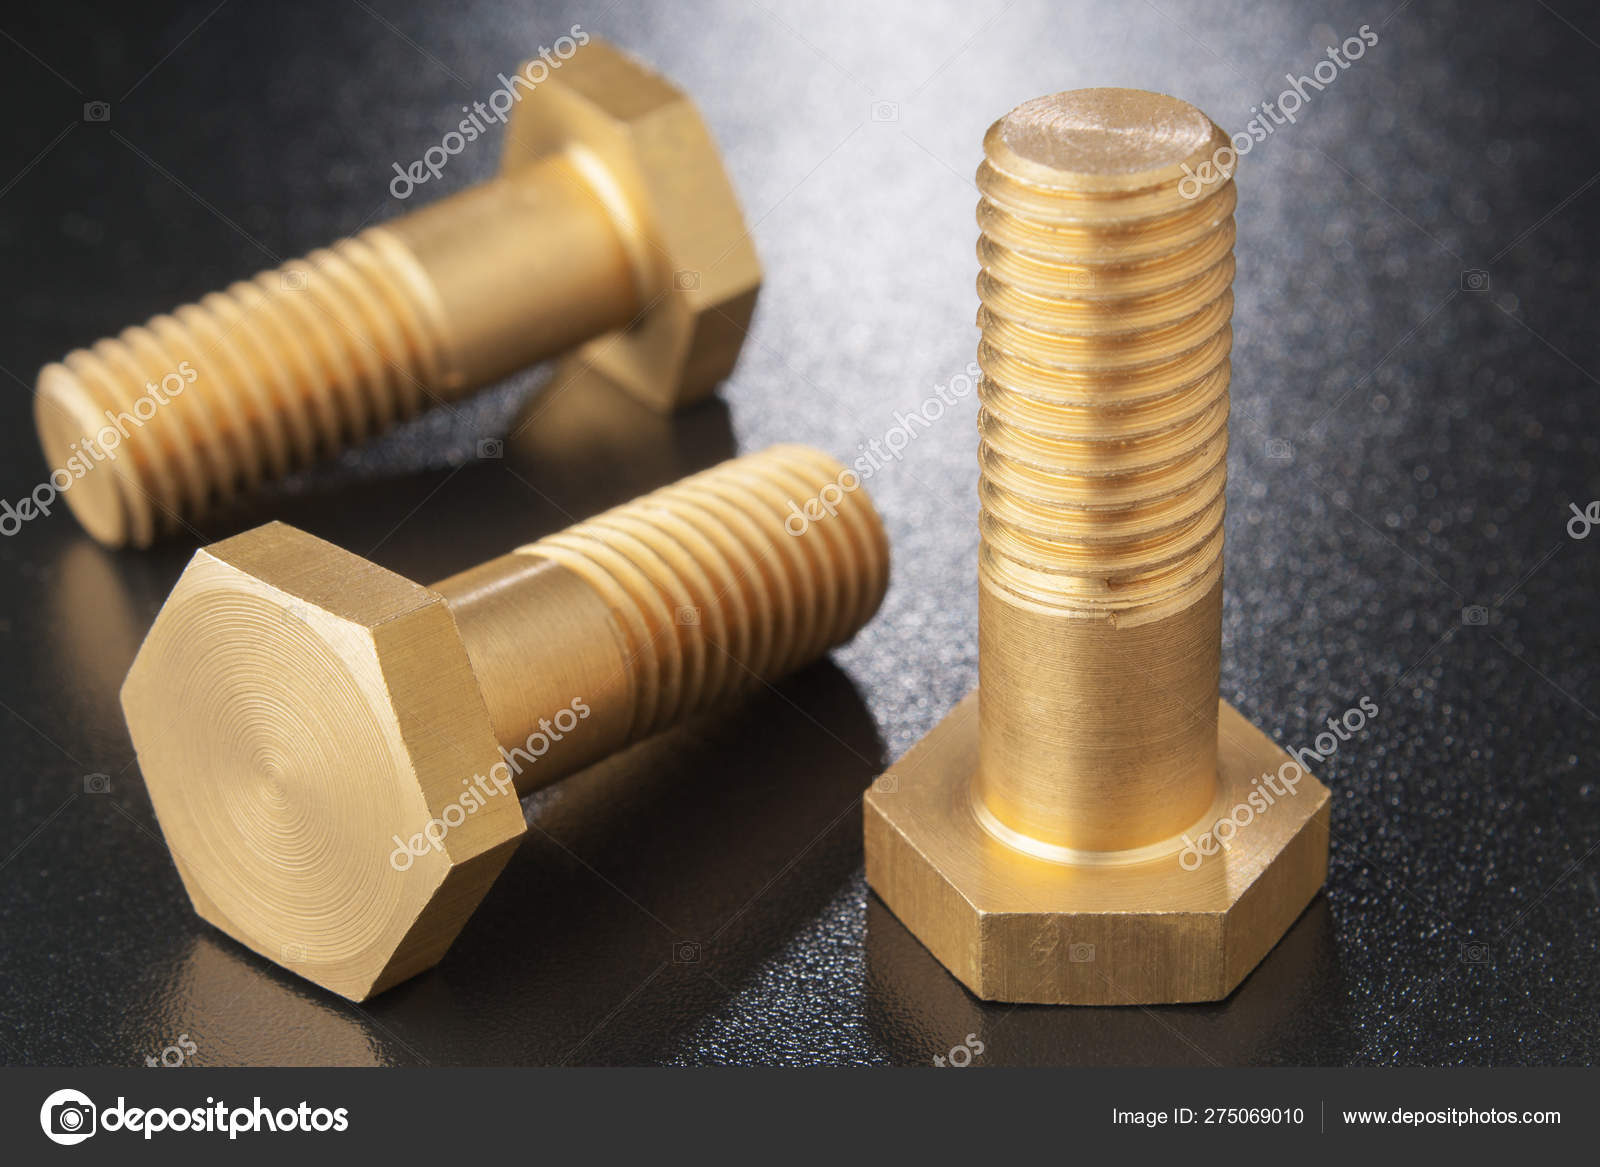 Picture of: Brass Bolts On Dark Surface Concept Of Small Part Of System Stock Photo C 85ruphoto 275069010